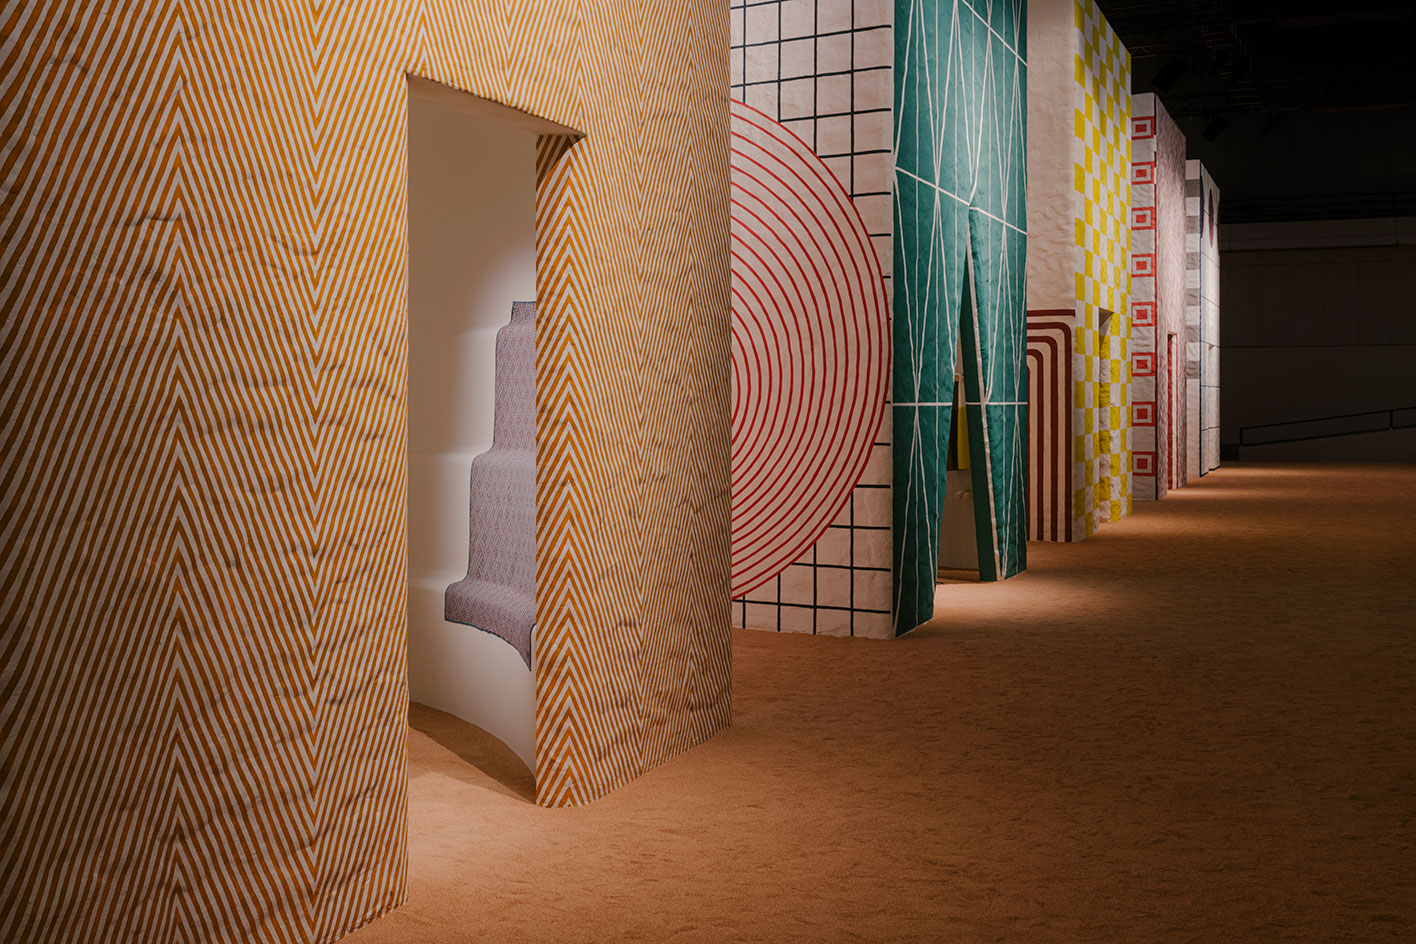 Hermes collections for the Home installation view at Salone 2021